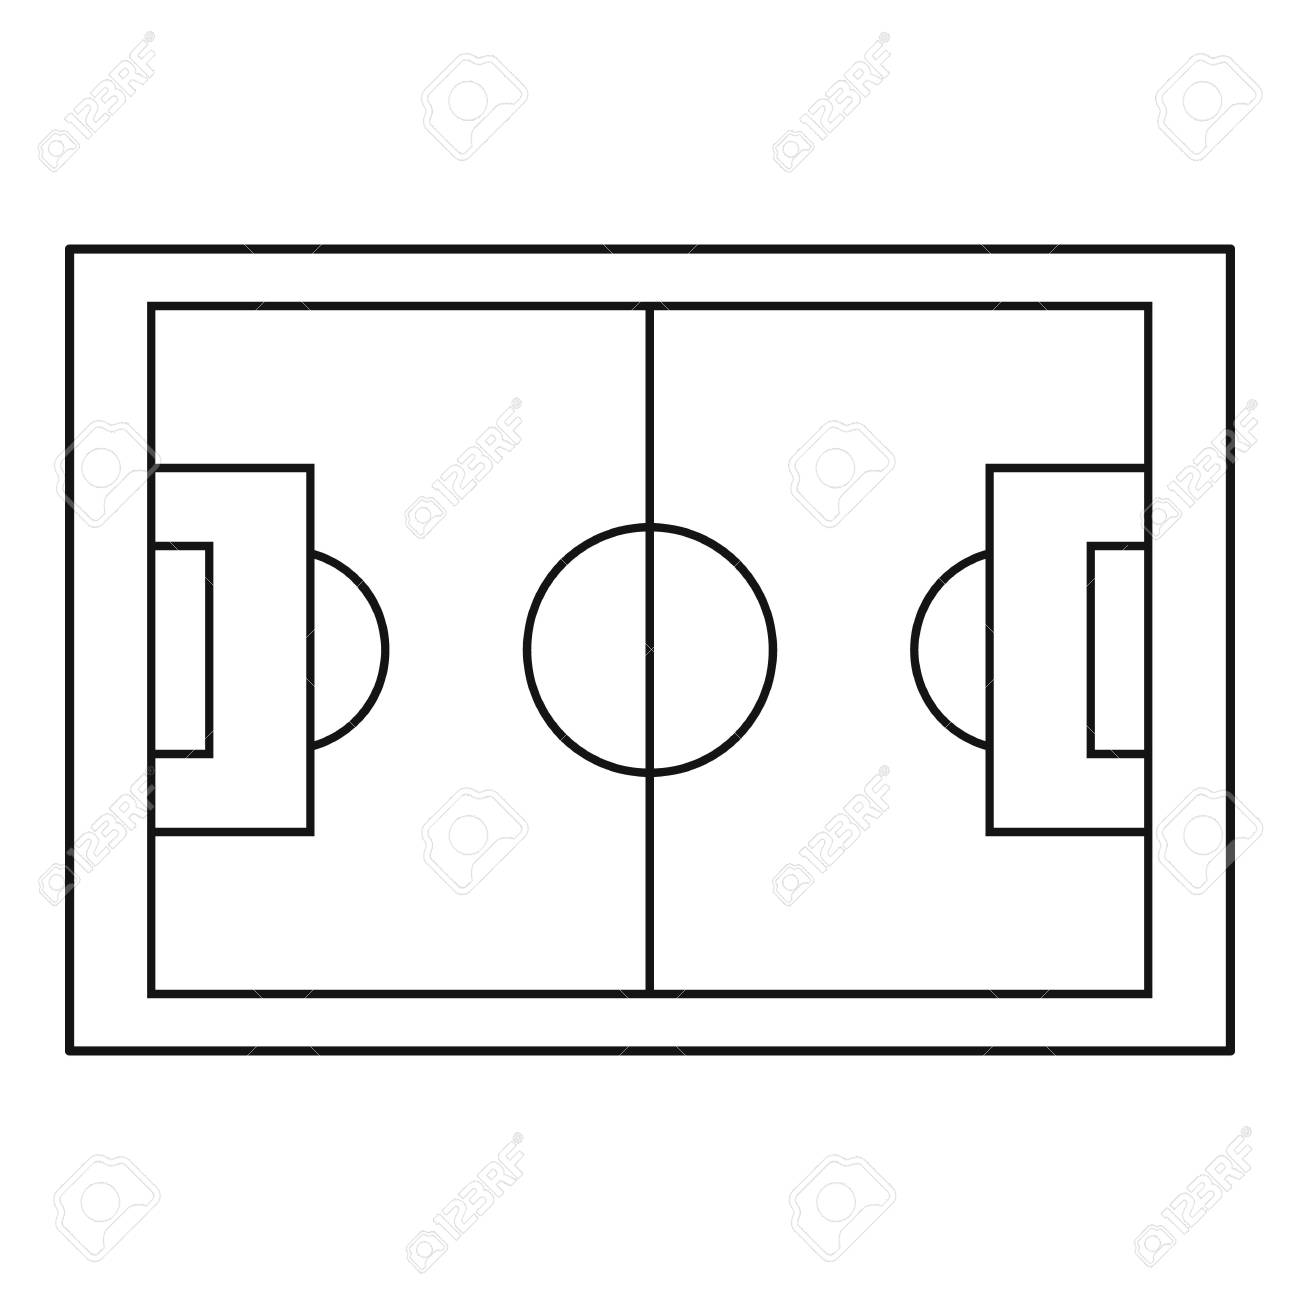 hight resolution of football field diagram black and white free download best football 1300x1300 pitch layout football blueprint design